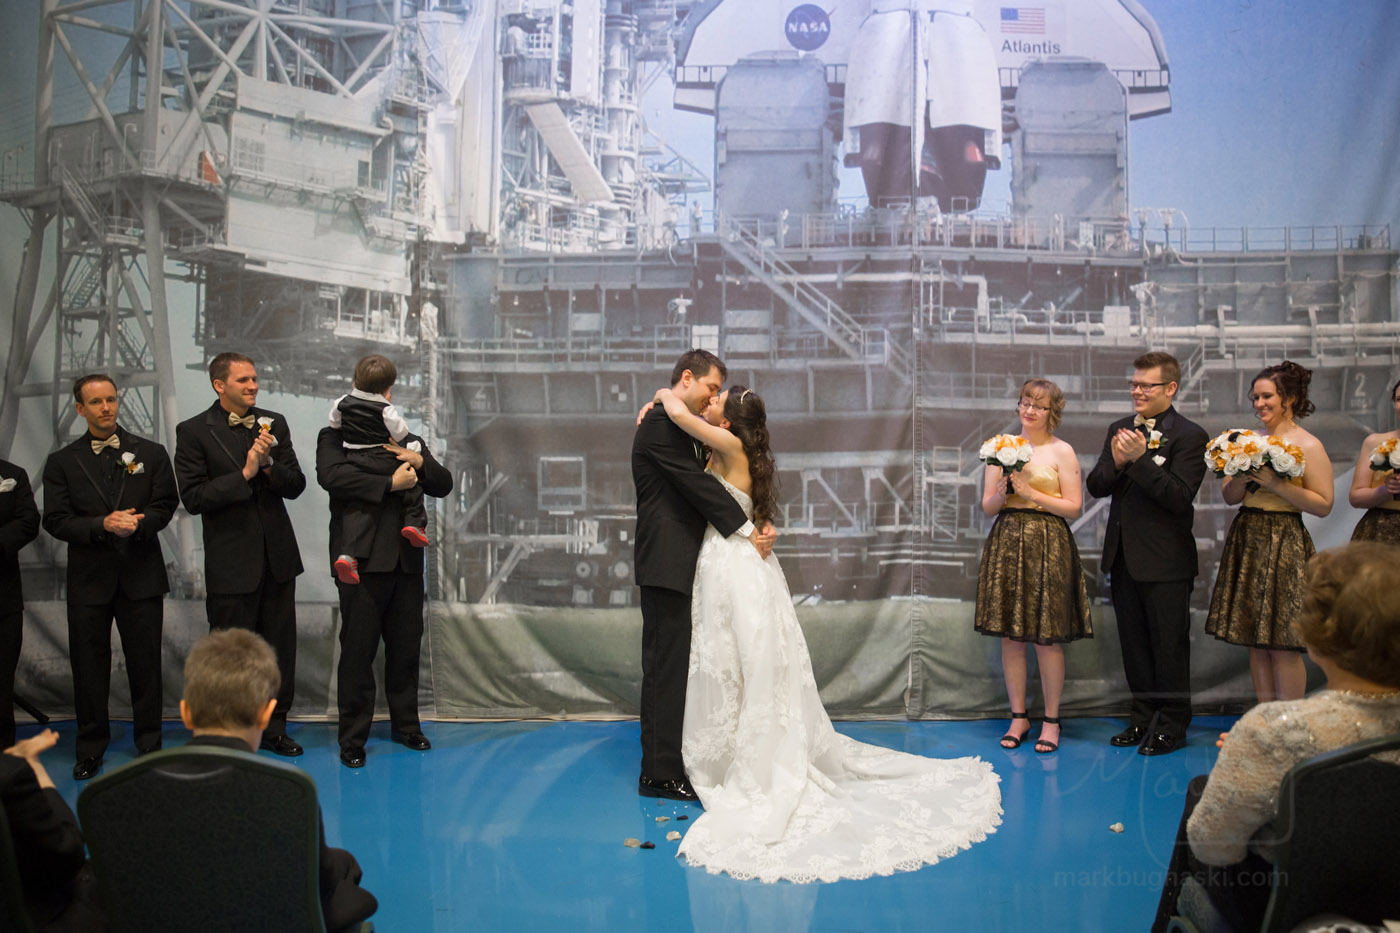 Air zoo wedding